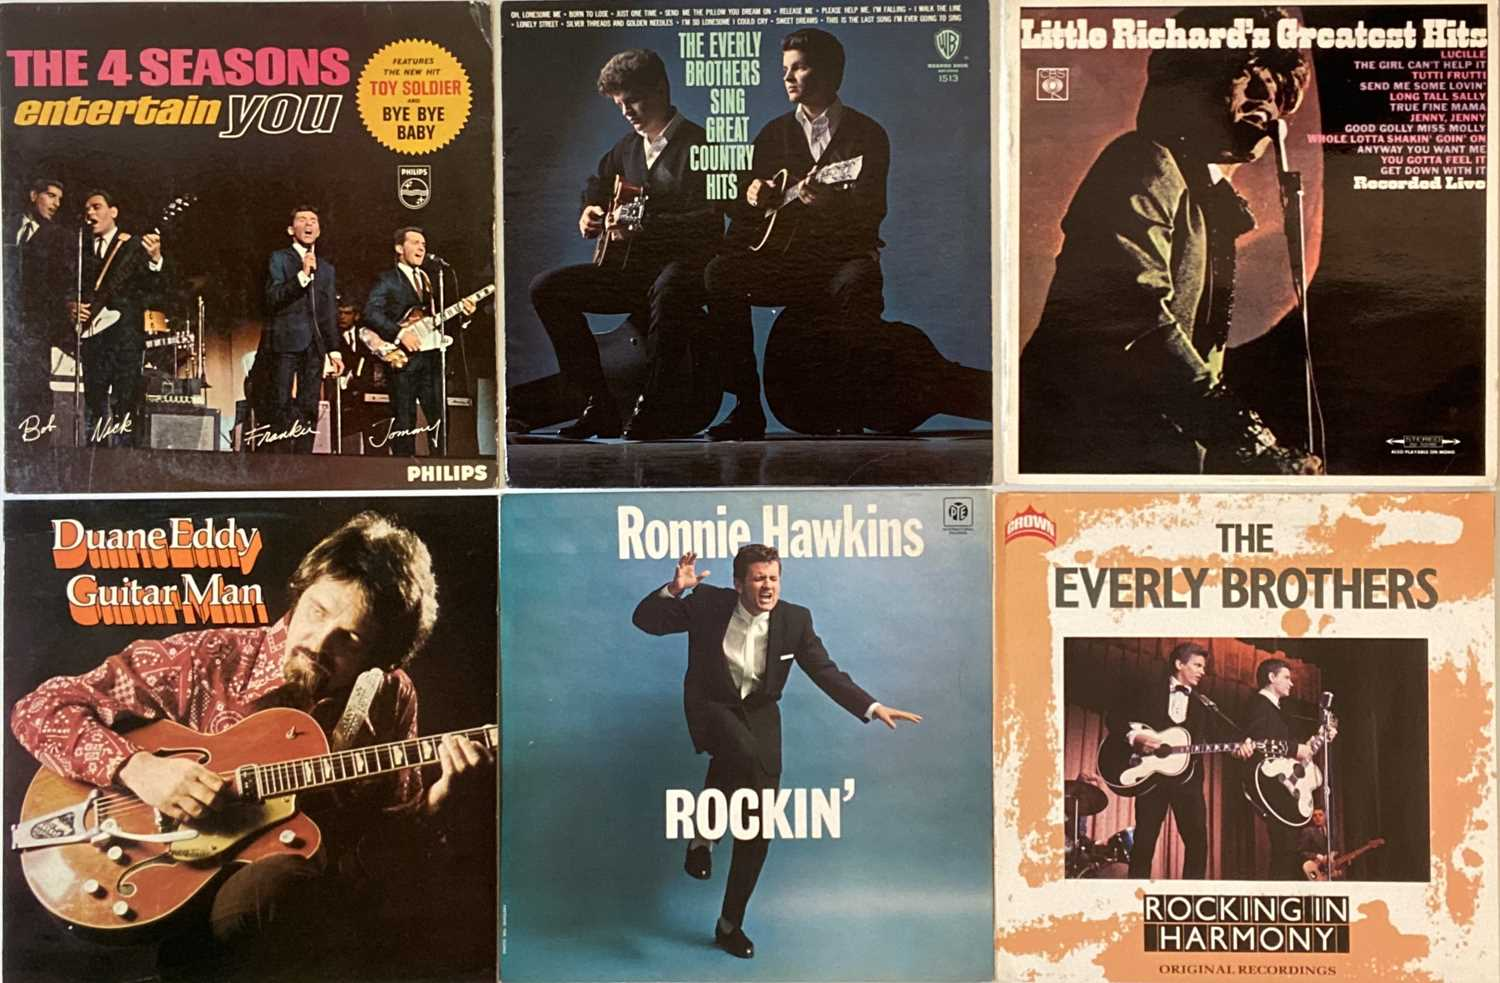 ROCK N ROLL/ JAZZ/ GUITAR SPECIALISTS - LPs - Image 2 of 5